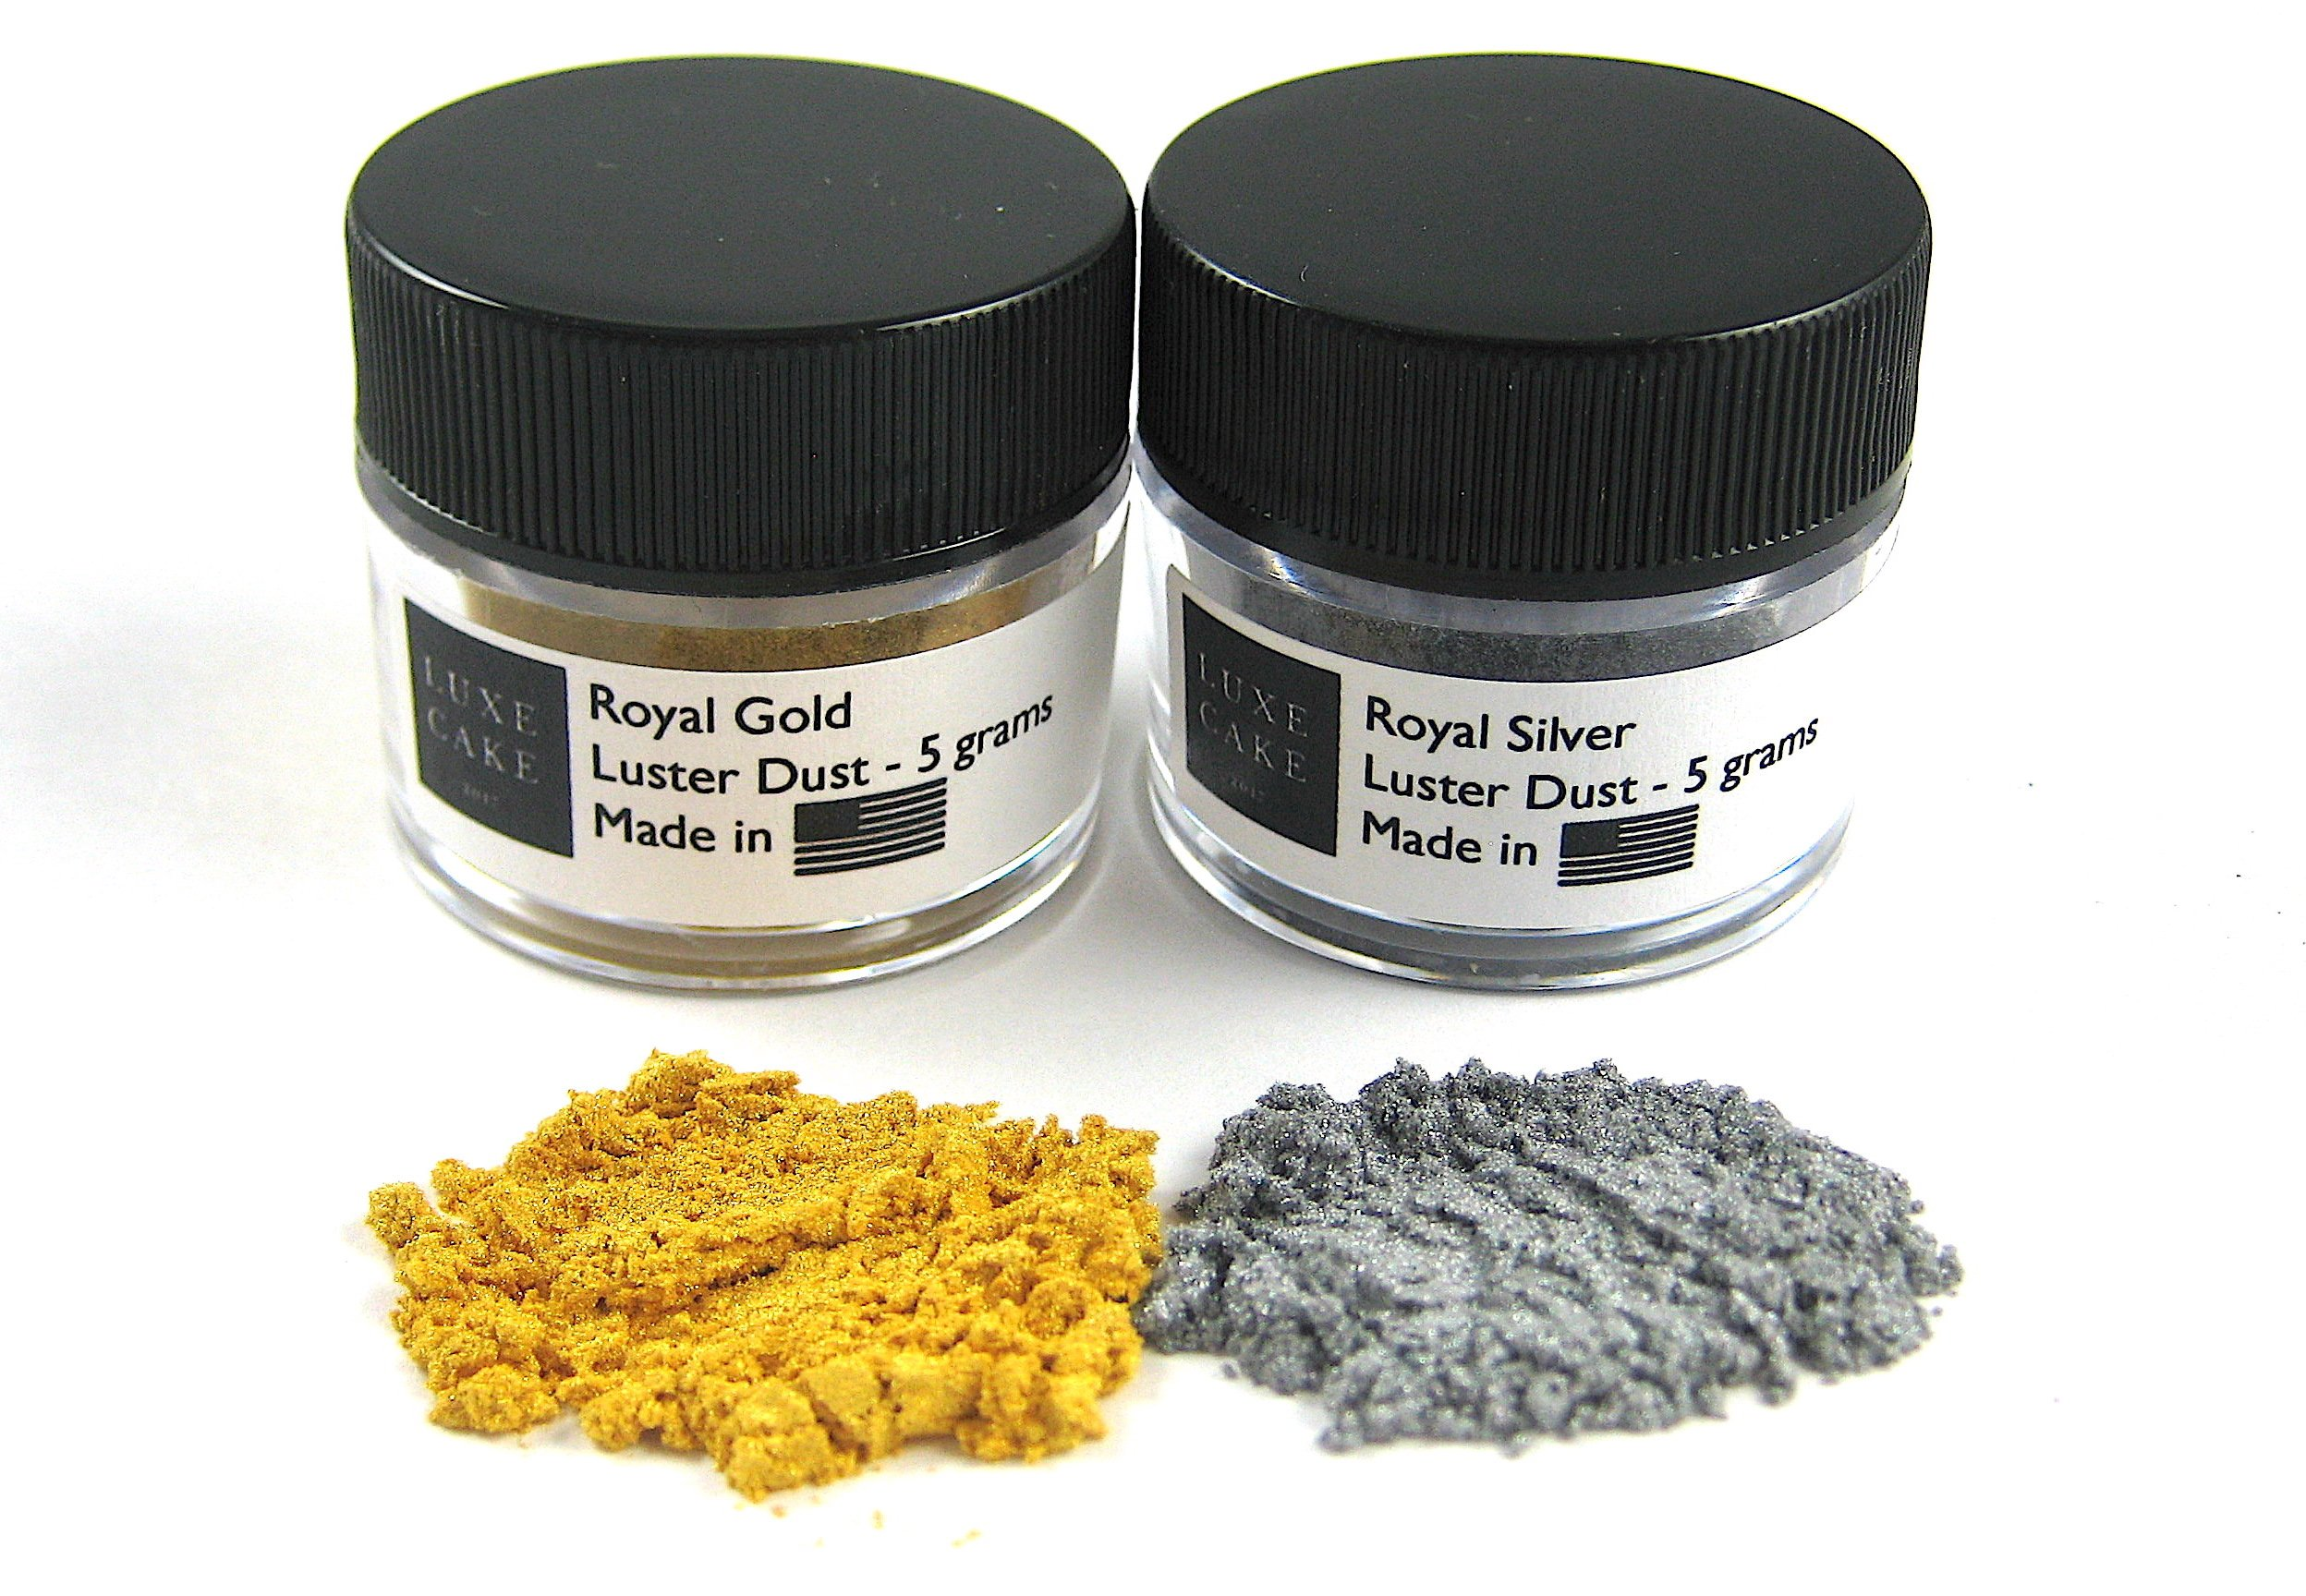 Royal Set (Gold & Silver) Luxury Cake Dust, 10 grams total, USA Made